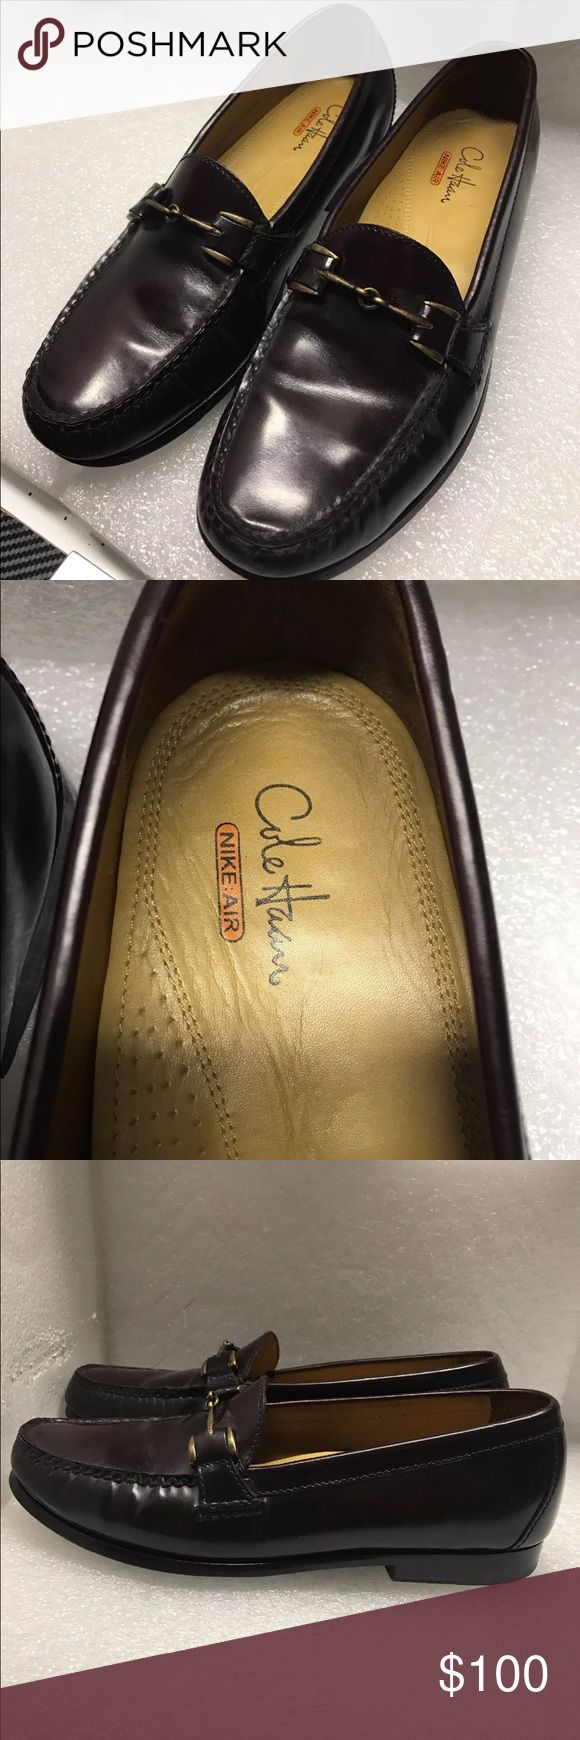 Cole Haan Men's loafers dress shoes size 9.5 Cole Haan hudson driver bit loafer men's dress shoes casual shoe loafers slip ons leather brown in color size 9.5 Cole Haan Shoes Loafers & Slip-Ons